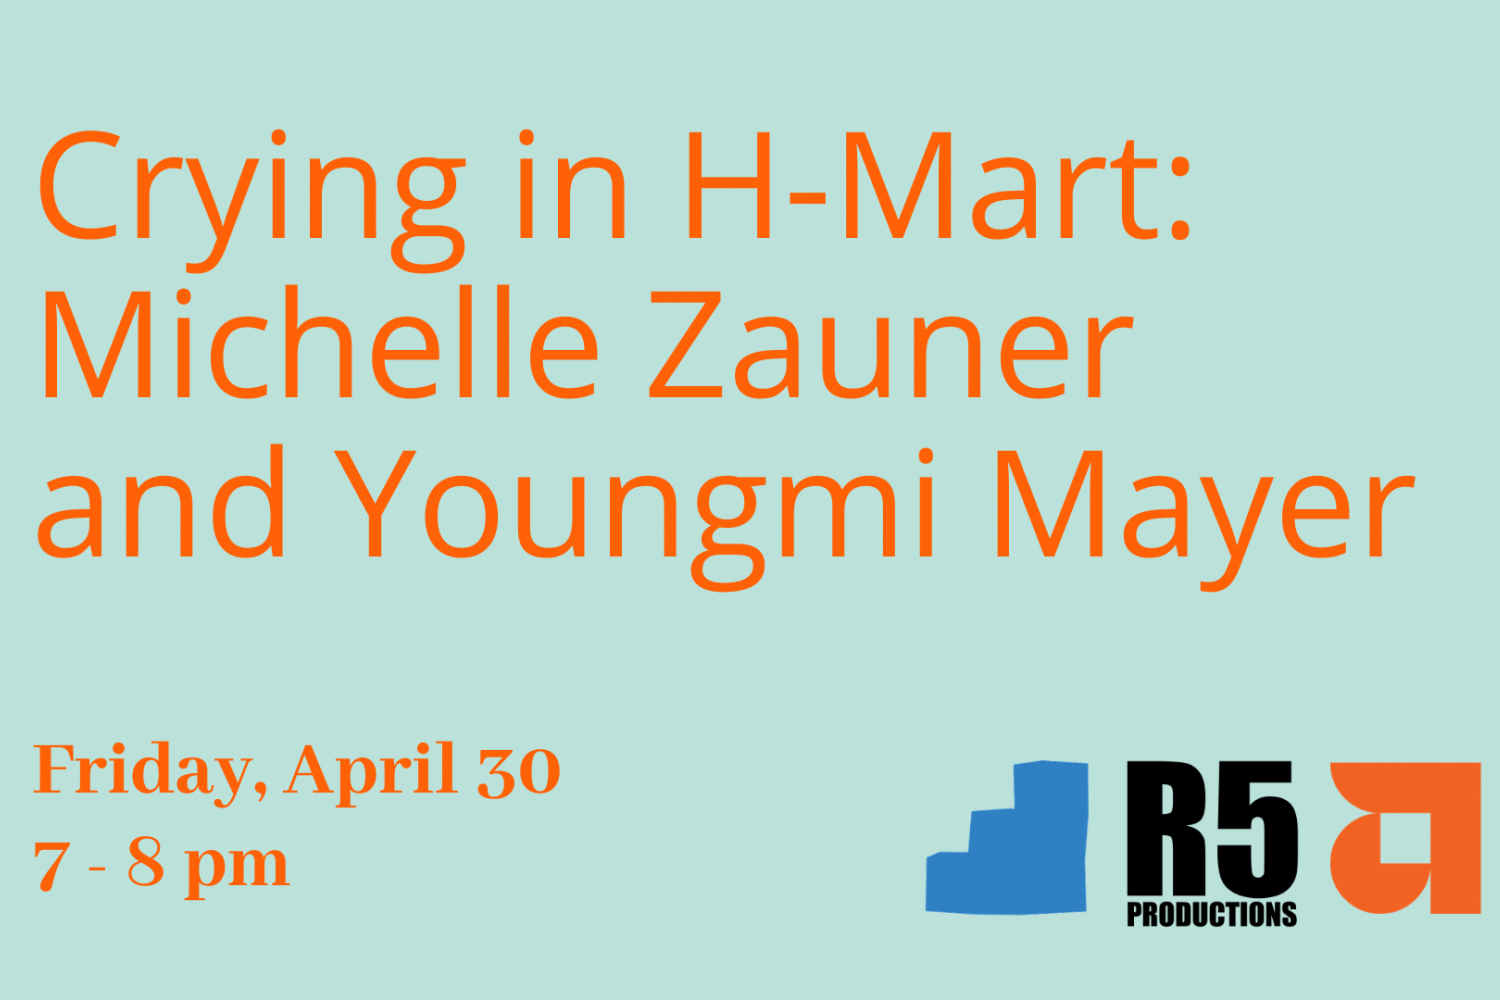 Event Flyer for Crying in H-Mart: Michelle Zauner and Youngmi Mayer